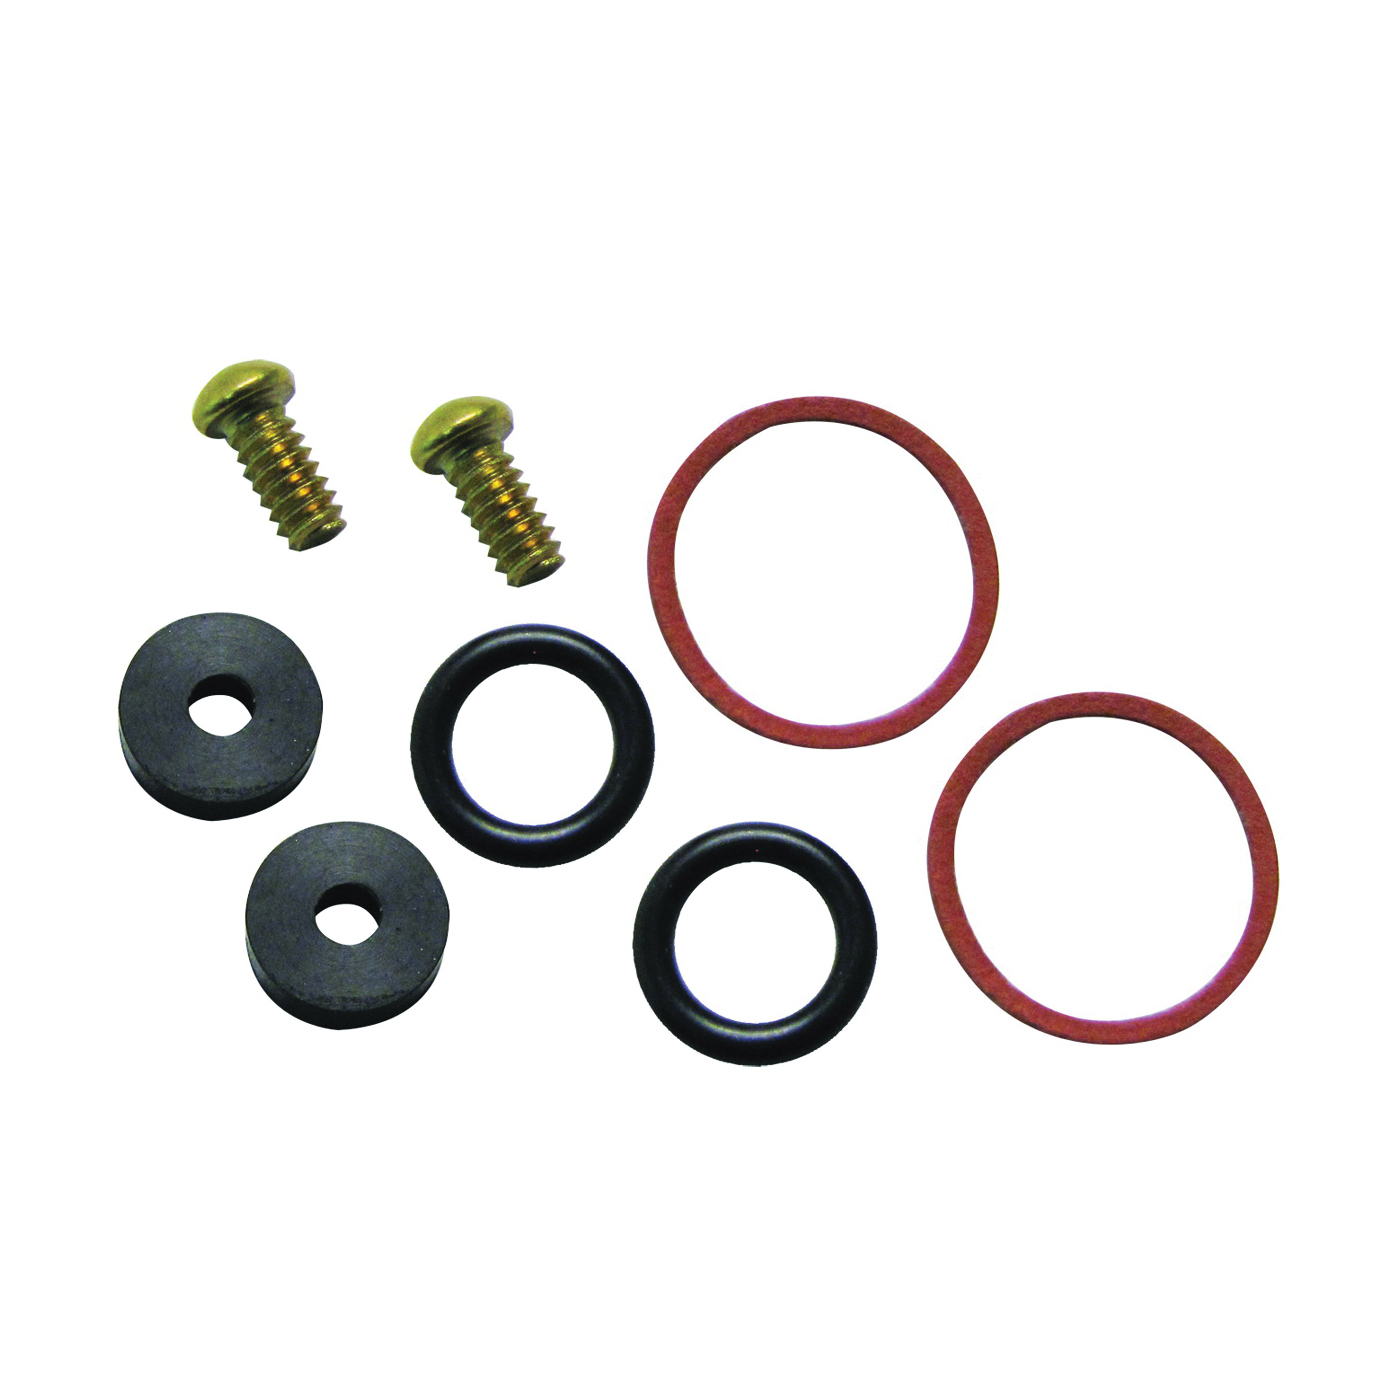 Picture of Plumb Pak PP808-50 Faucet Repair Kit, For: Price Pfister Crown Jewel and Harcraft Faucets